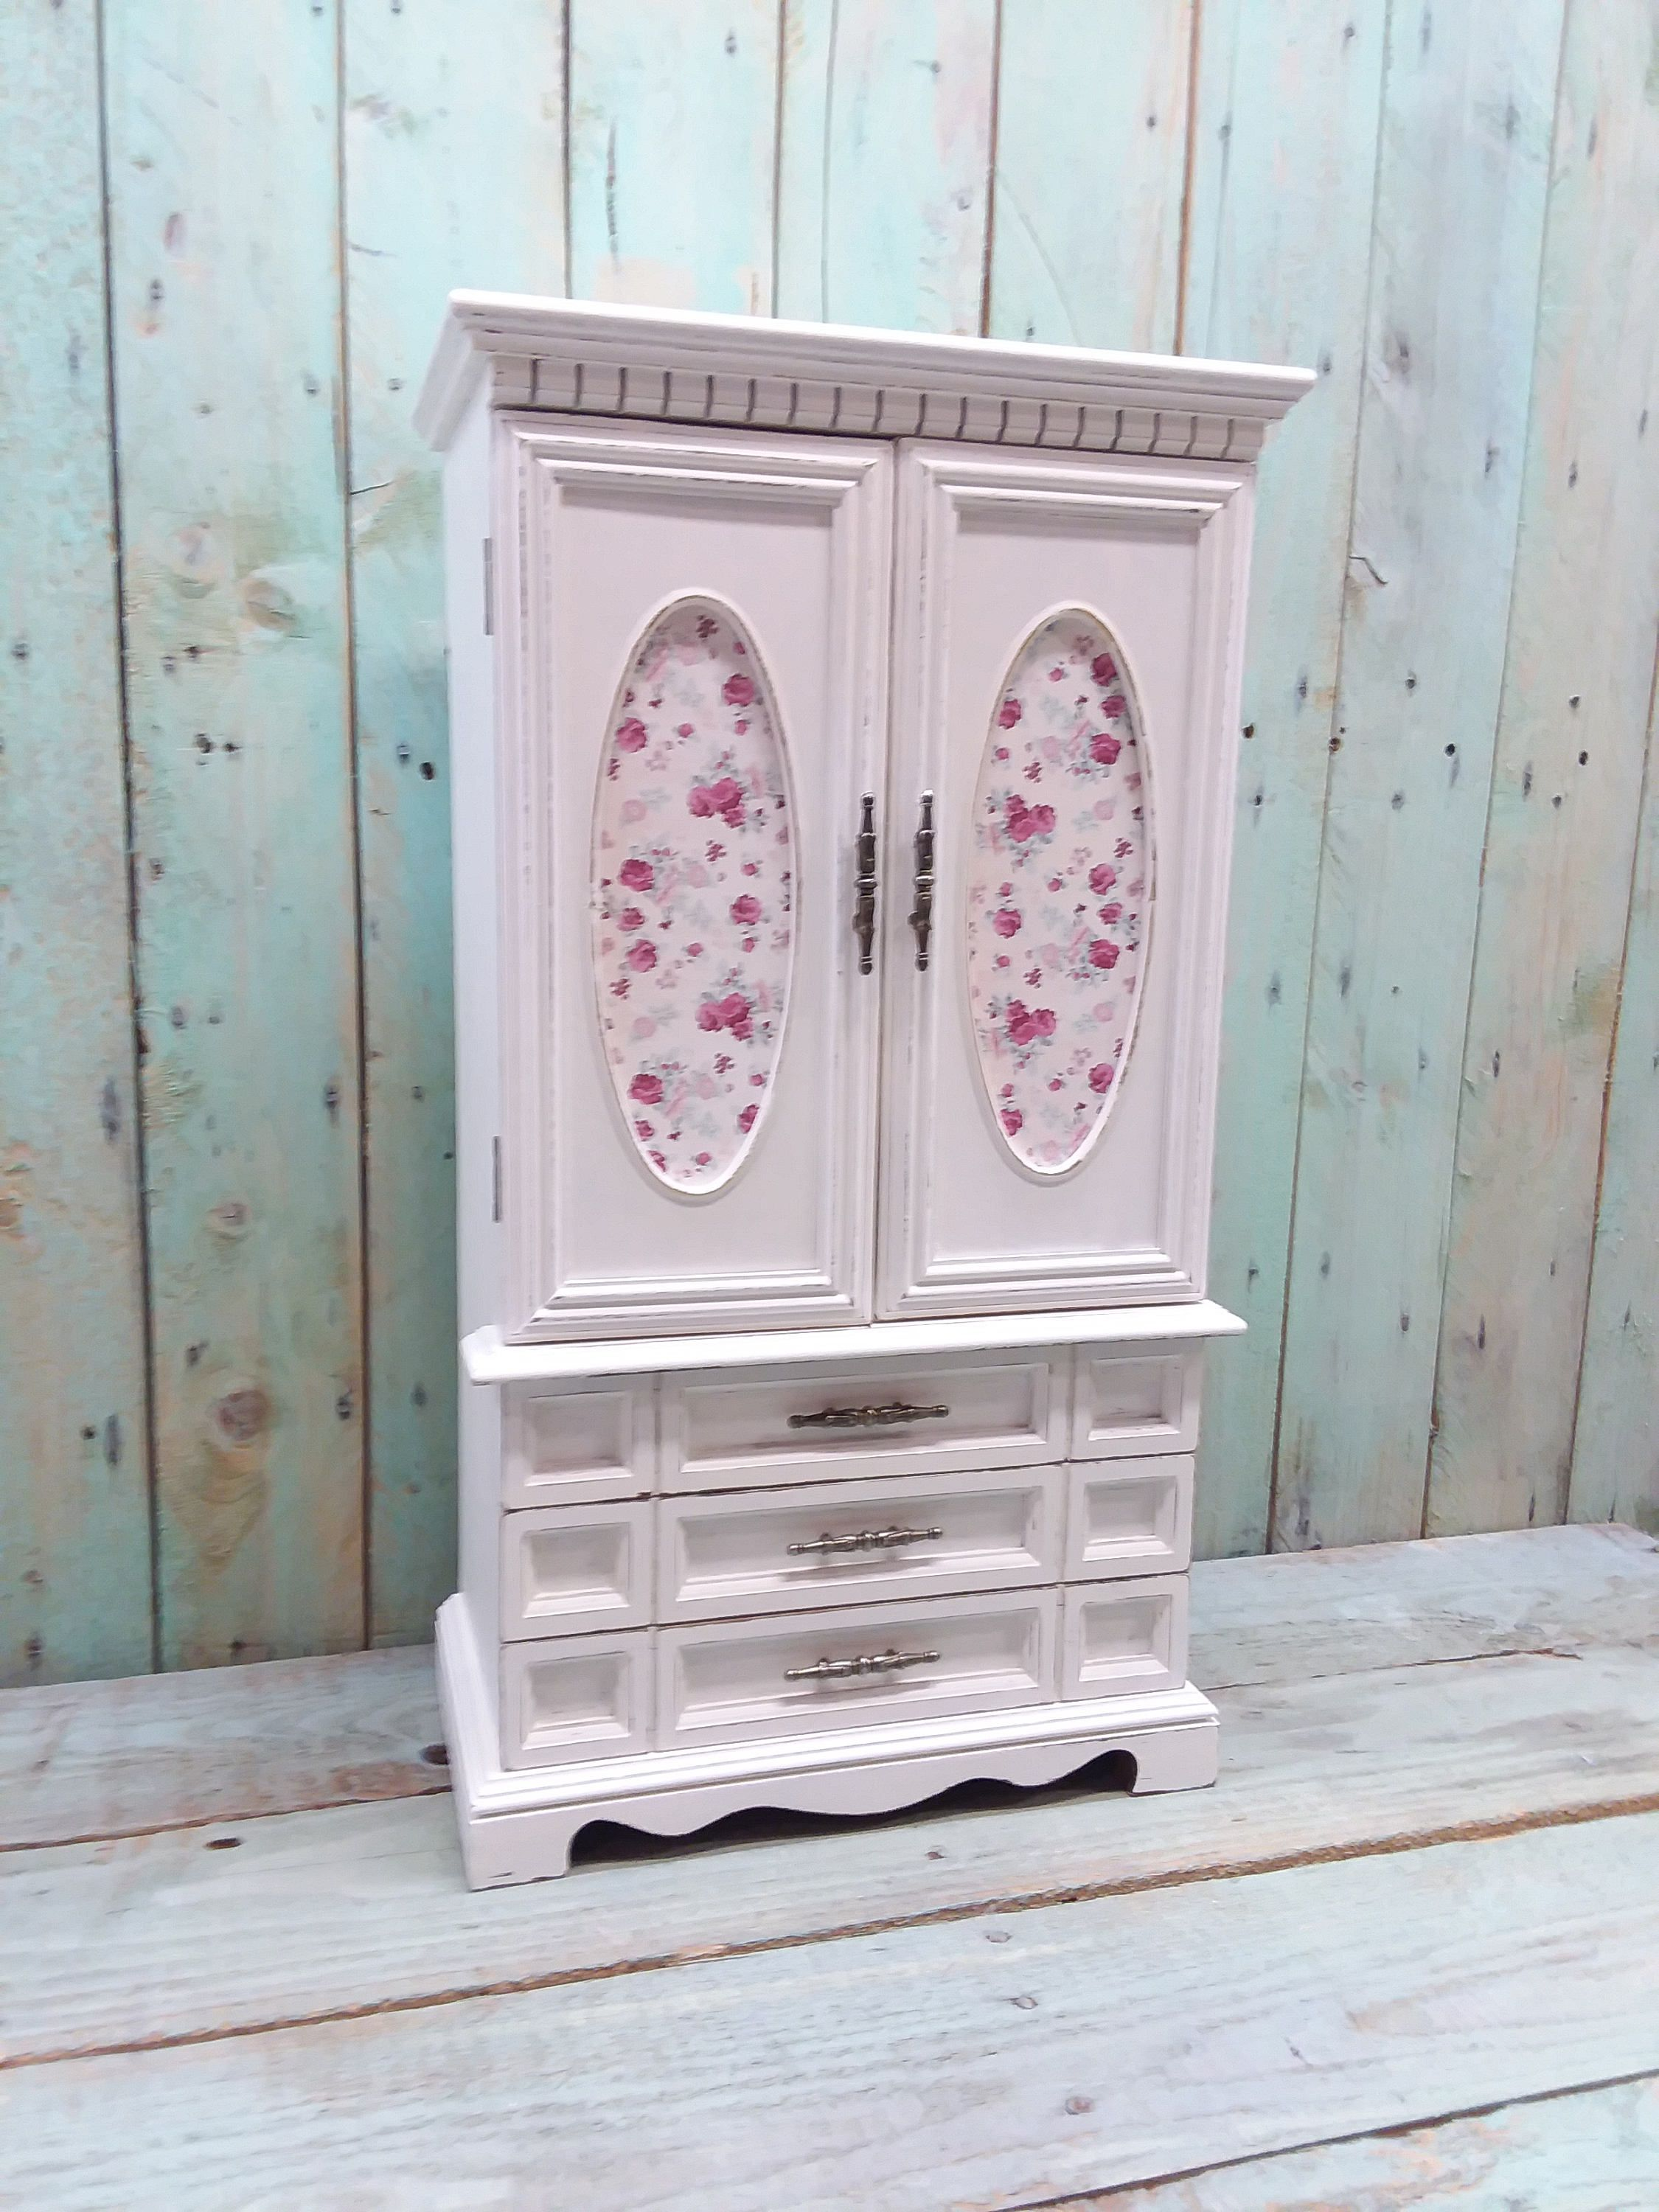 Large Shabby Chic Vintage Rustic Wooden Jewelry Box Armoire Painted Antique White  Distressed Upcycled Refurbished By